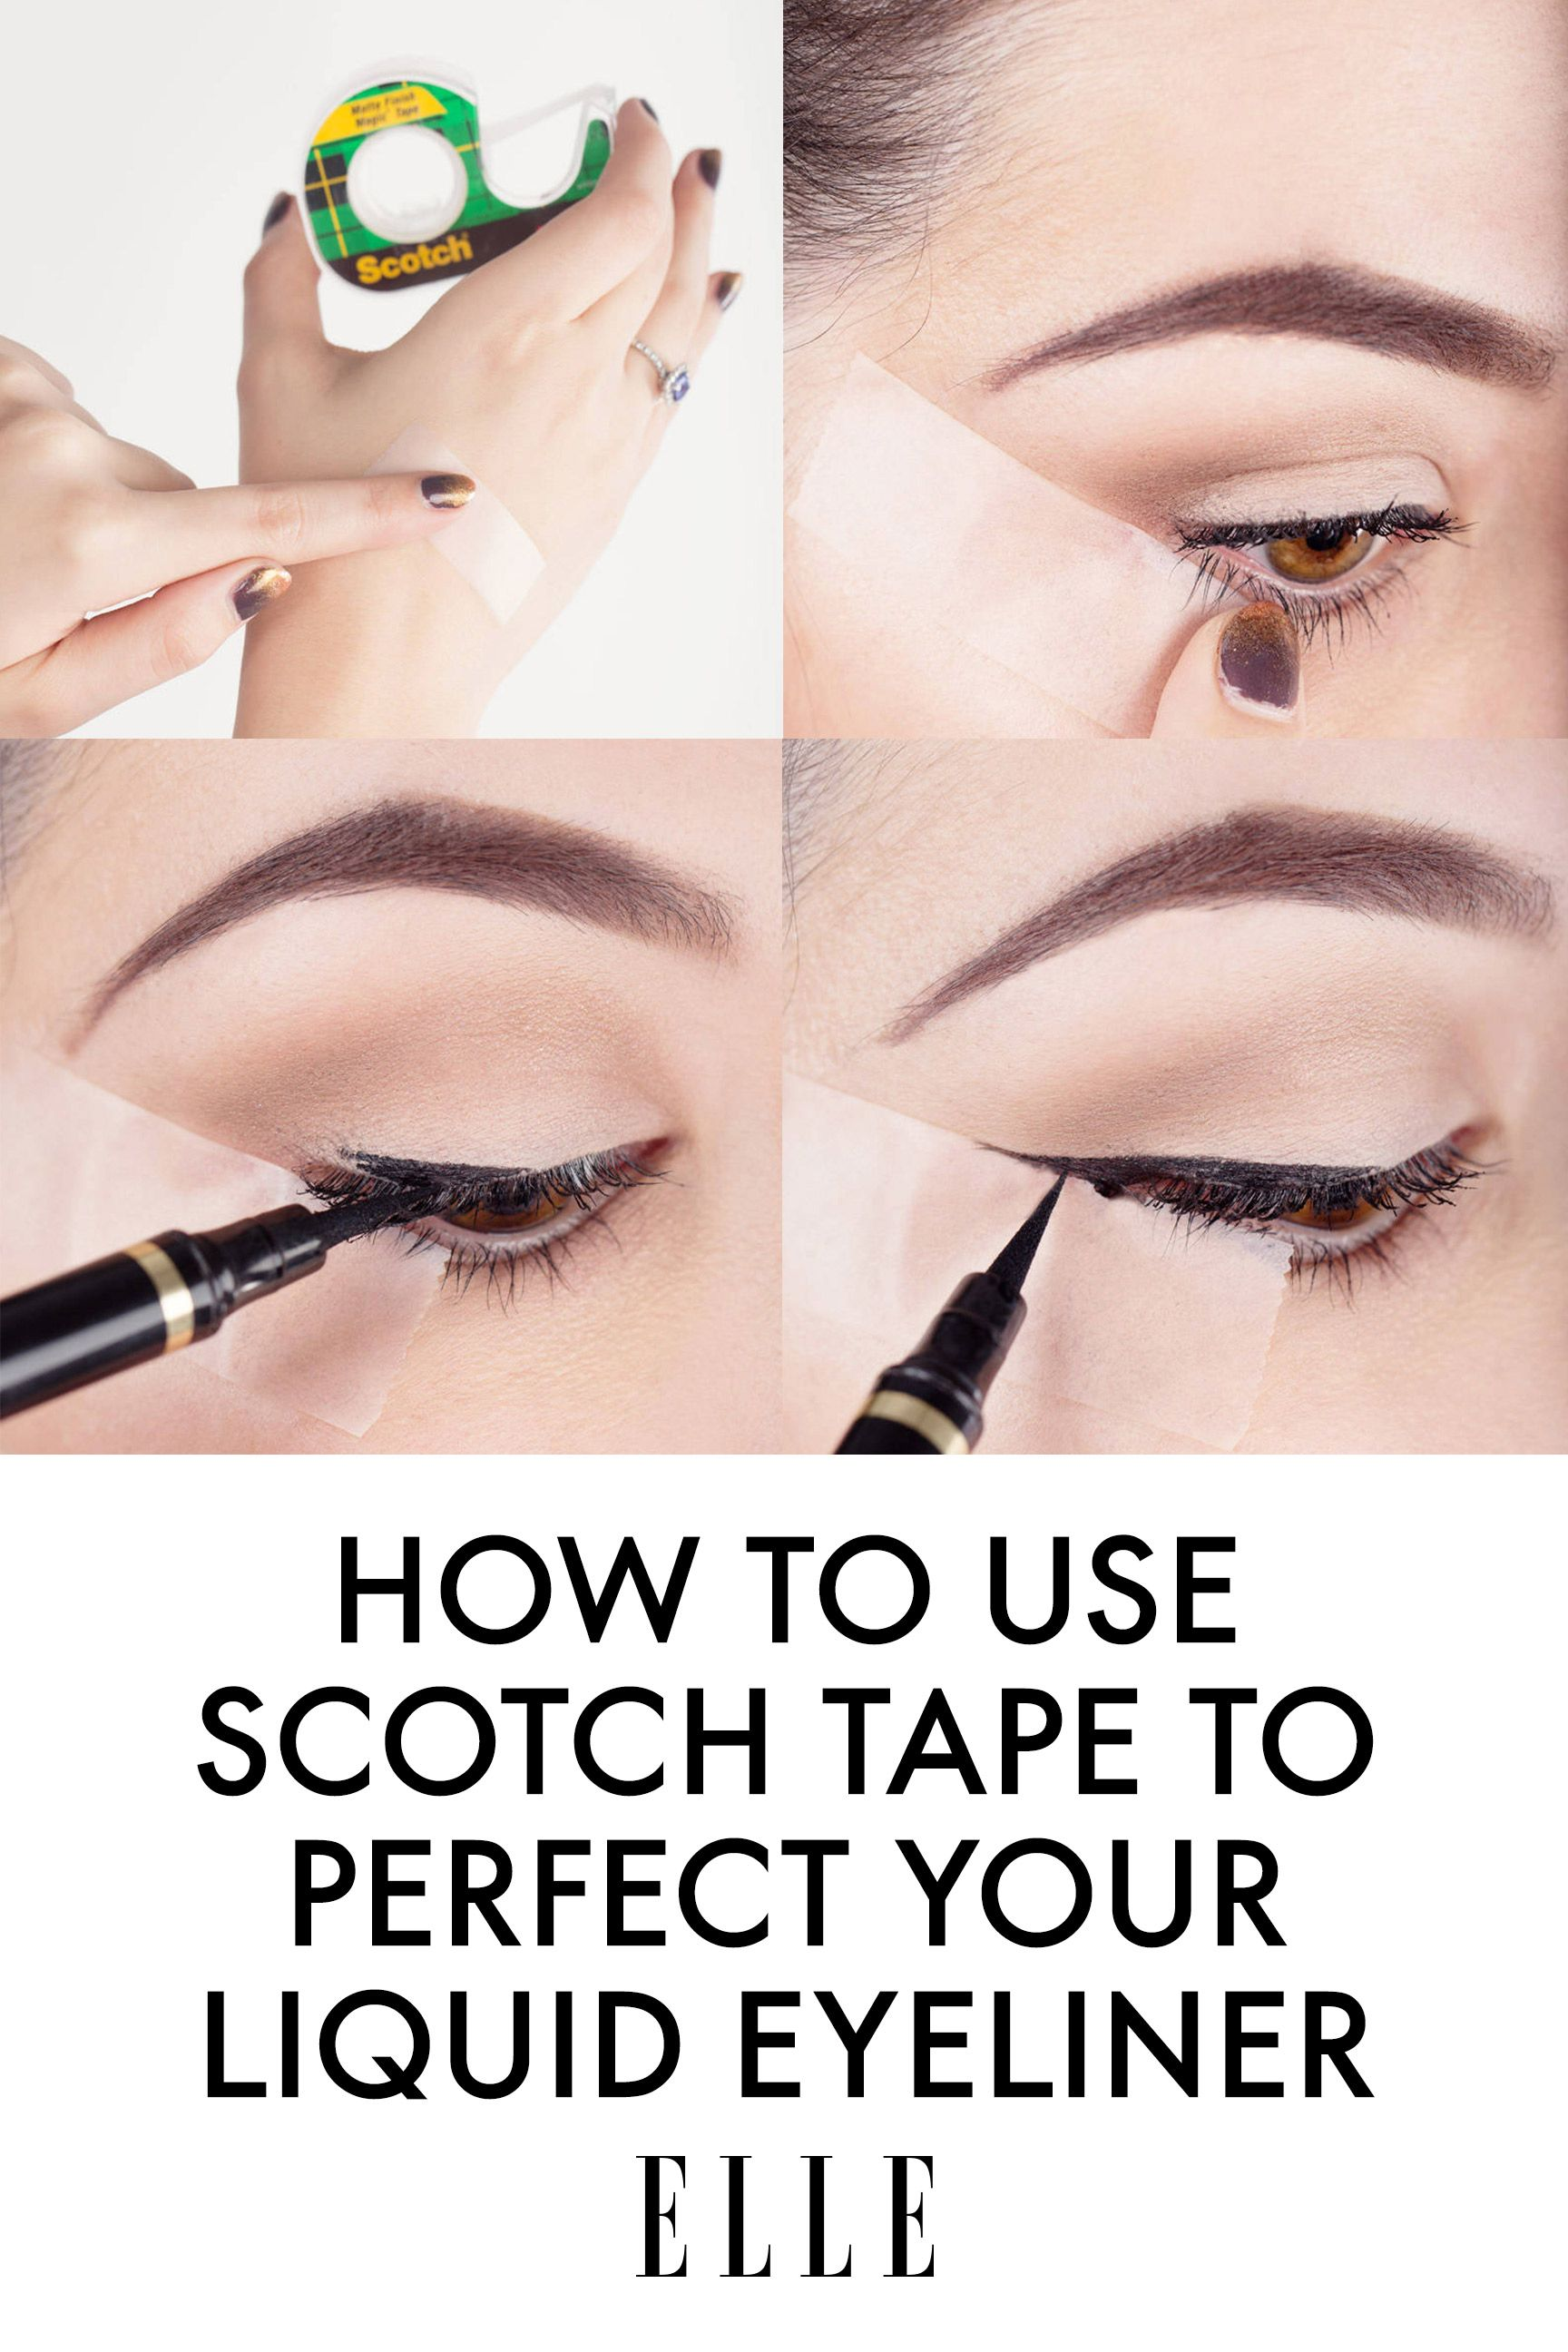 Liquid Eyeliner Tips - Scotch Tape Tips to Perfect Your Liquid